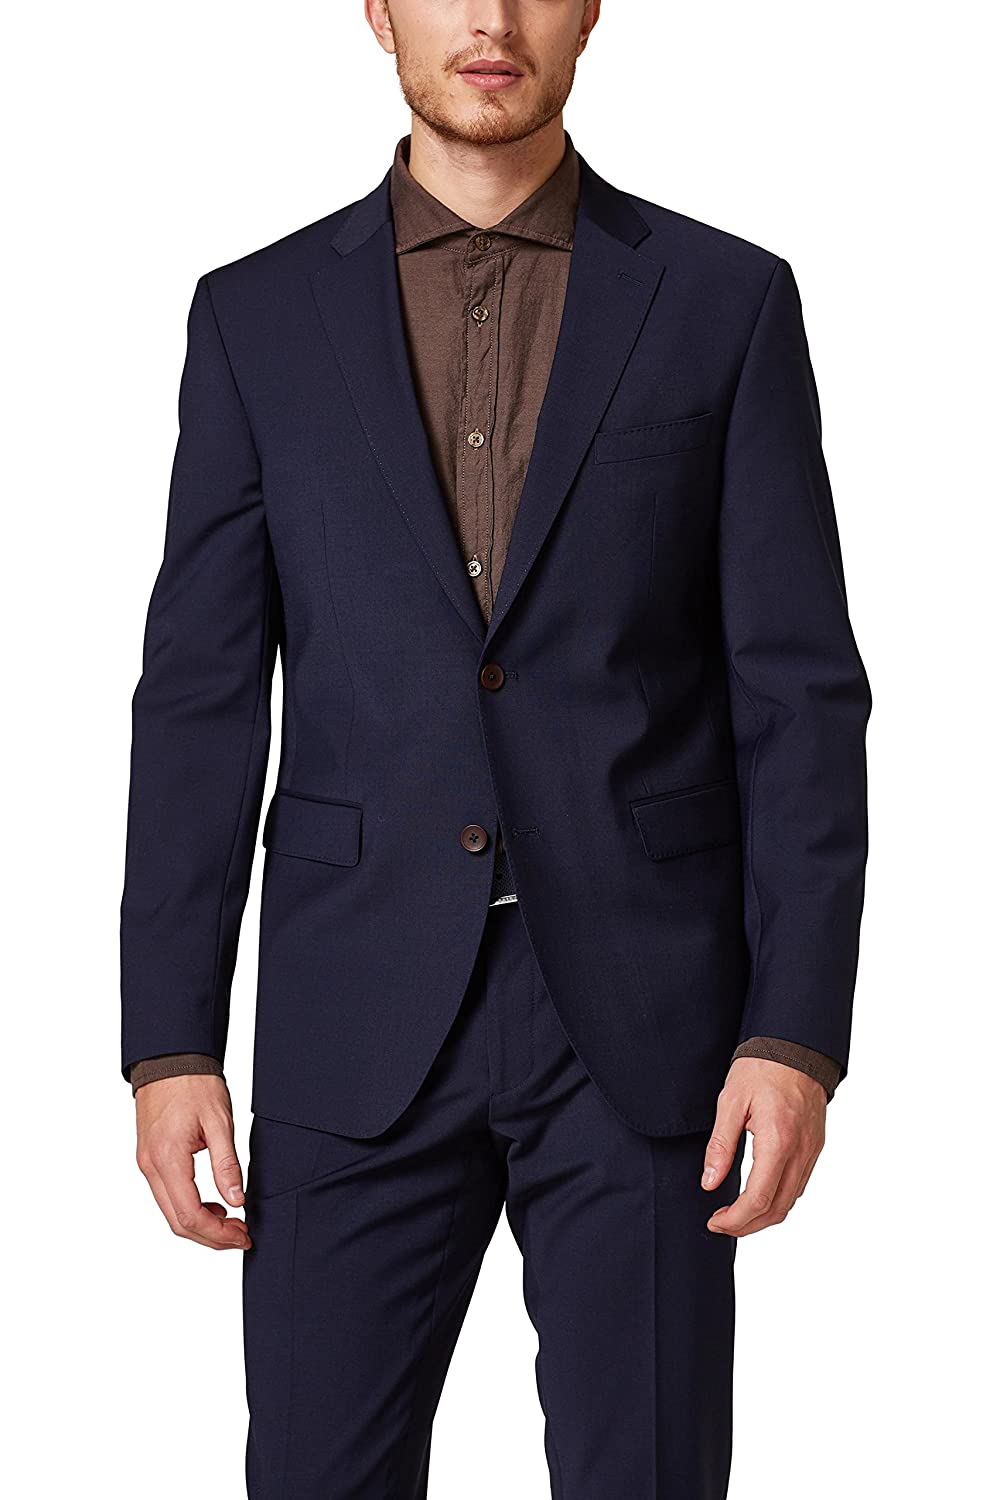 ESPRIT Collection Blazer Uomo 998EO2G800 - Active Suit